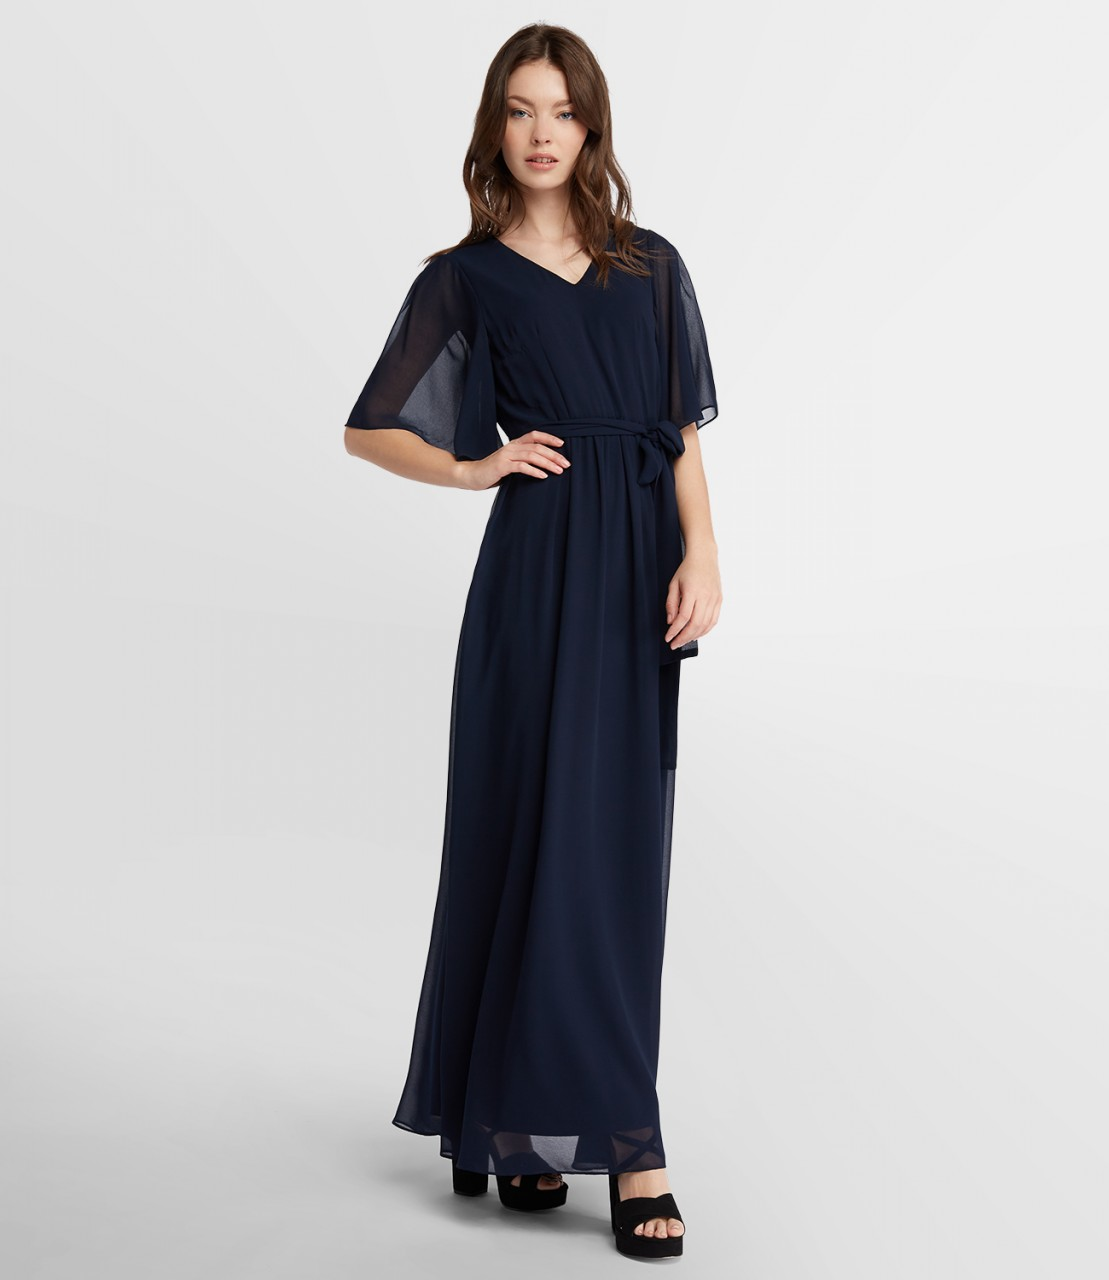 Extralanges Chiffonkleid